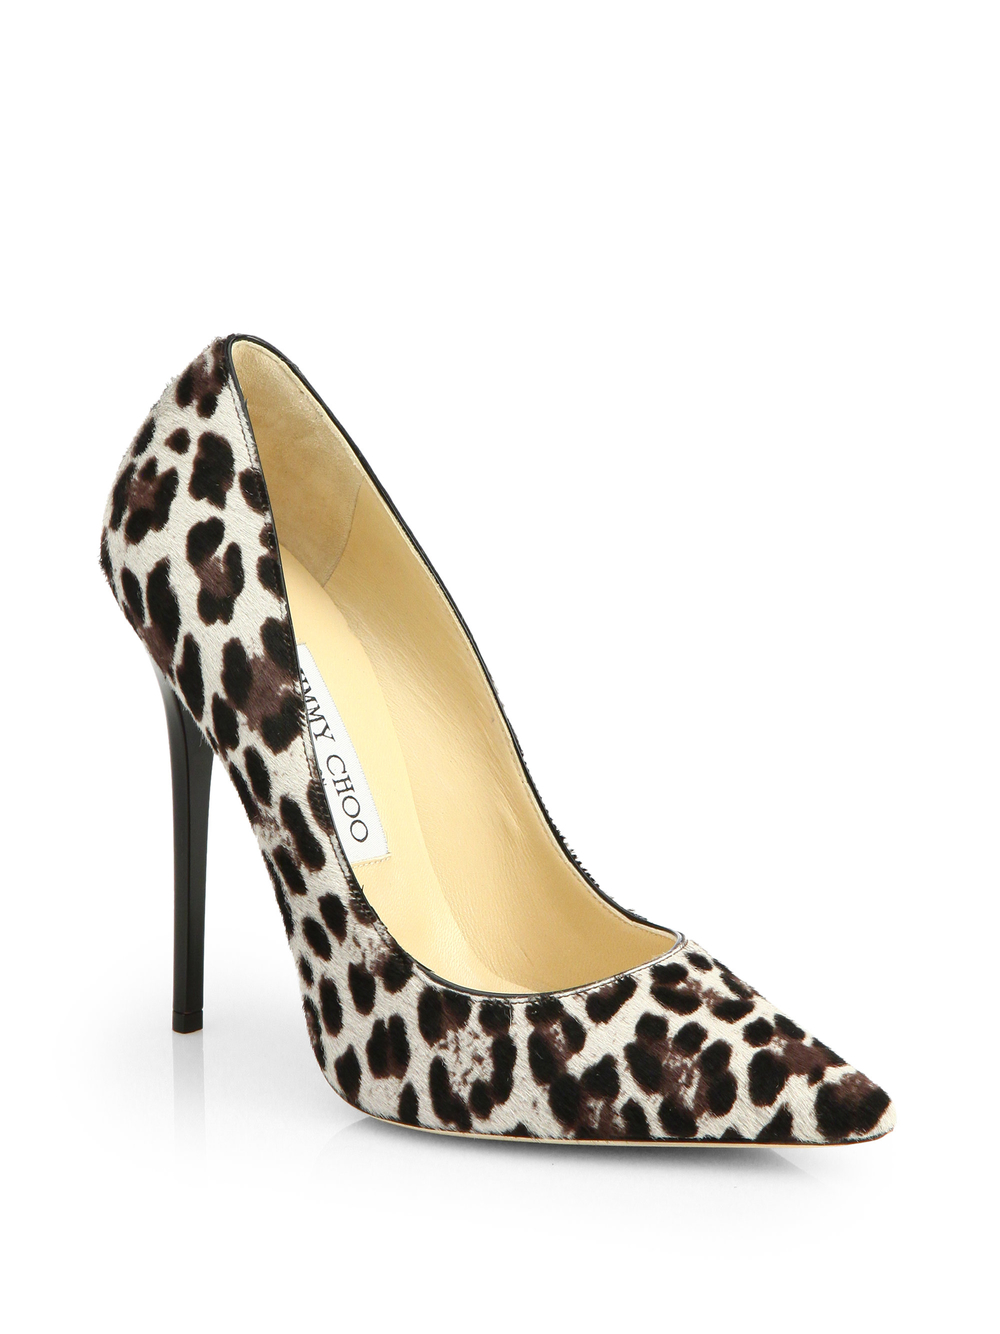 jimmy-choo-animal-anouk-leopard-print-calf-hair-pumps-product-1-18746354-2-828731038-normal.jpeg